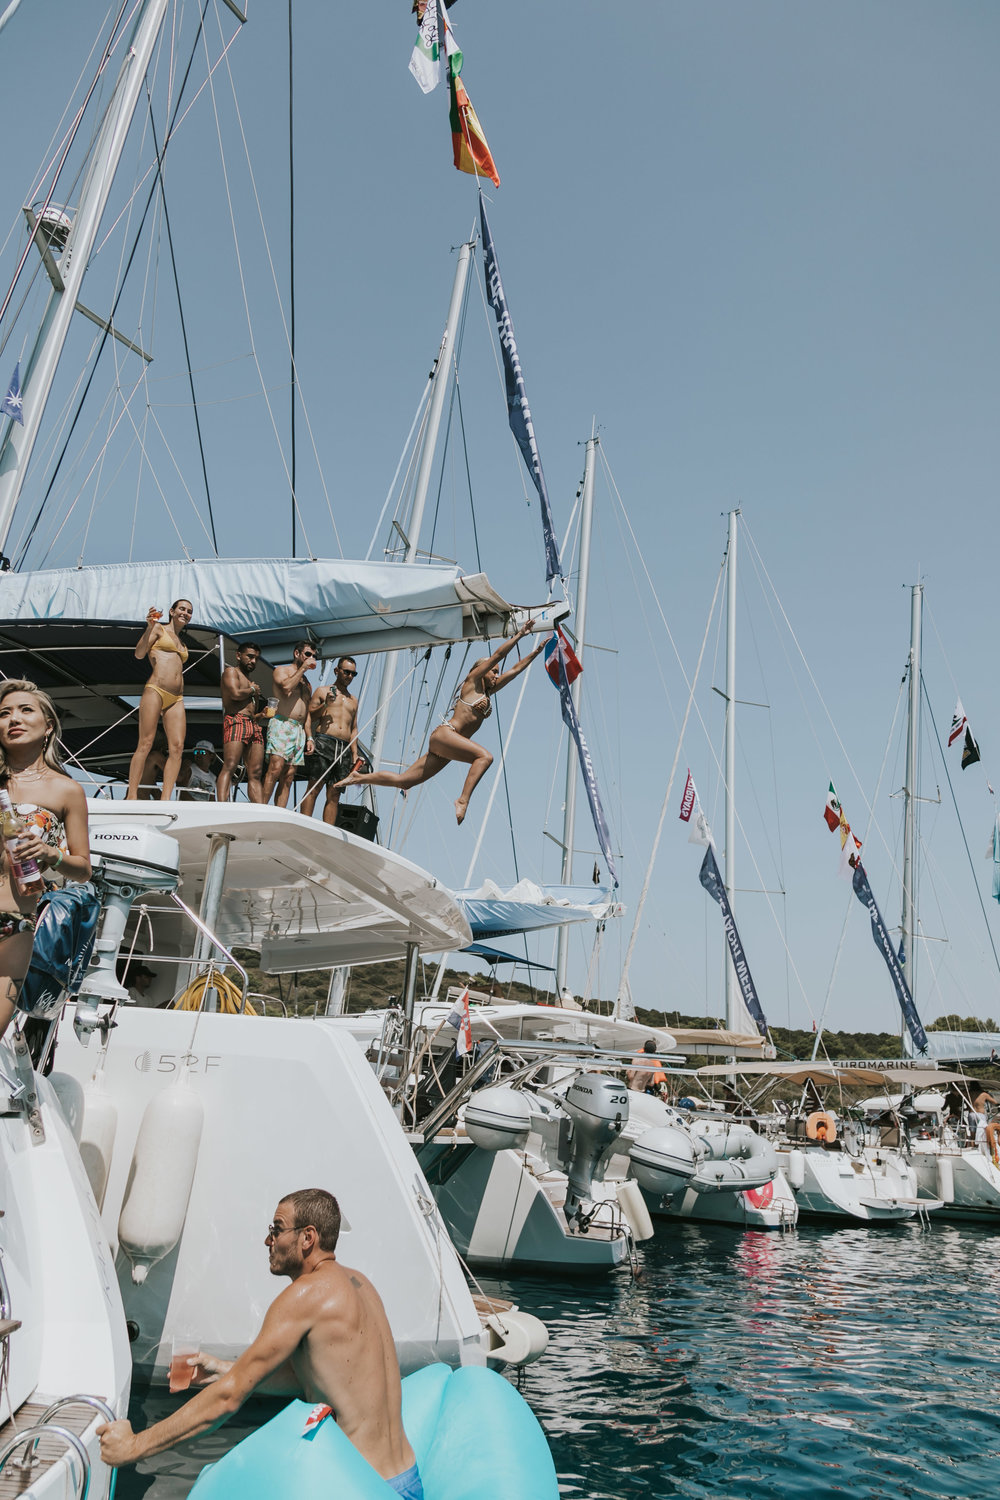 Supercharge-YachtWeek-AUG2018-CreditAllisonKuhlPhotos-7853.jpg